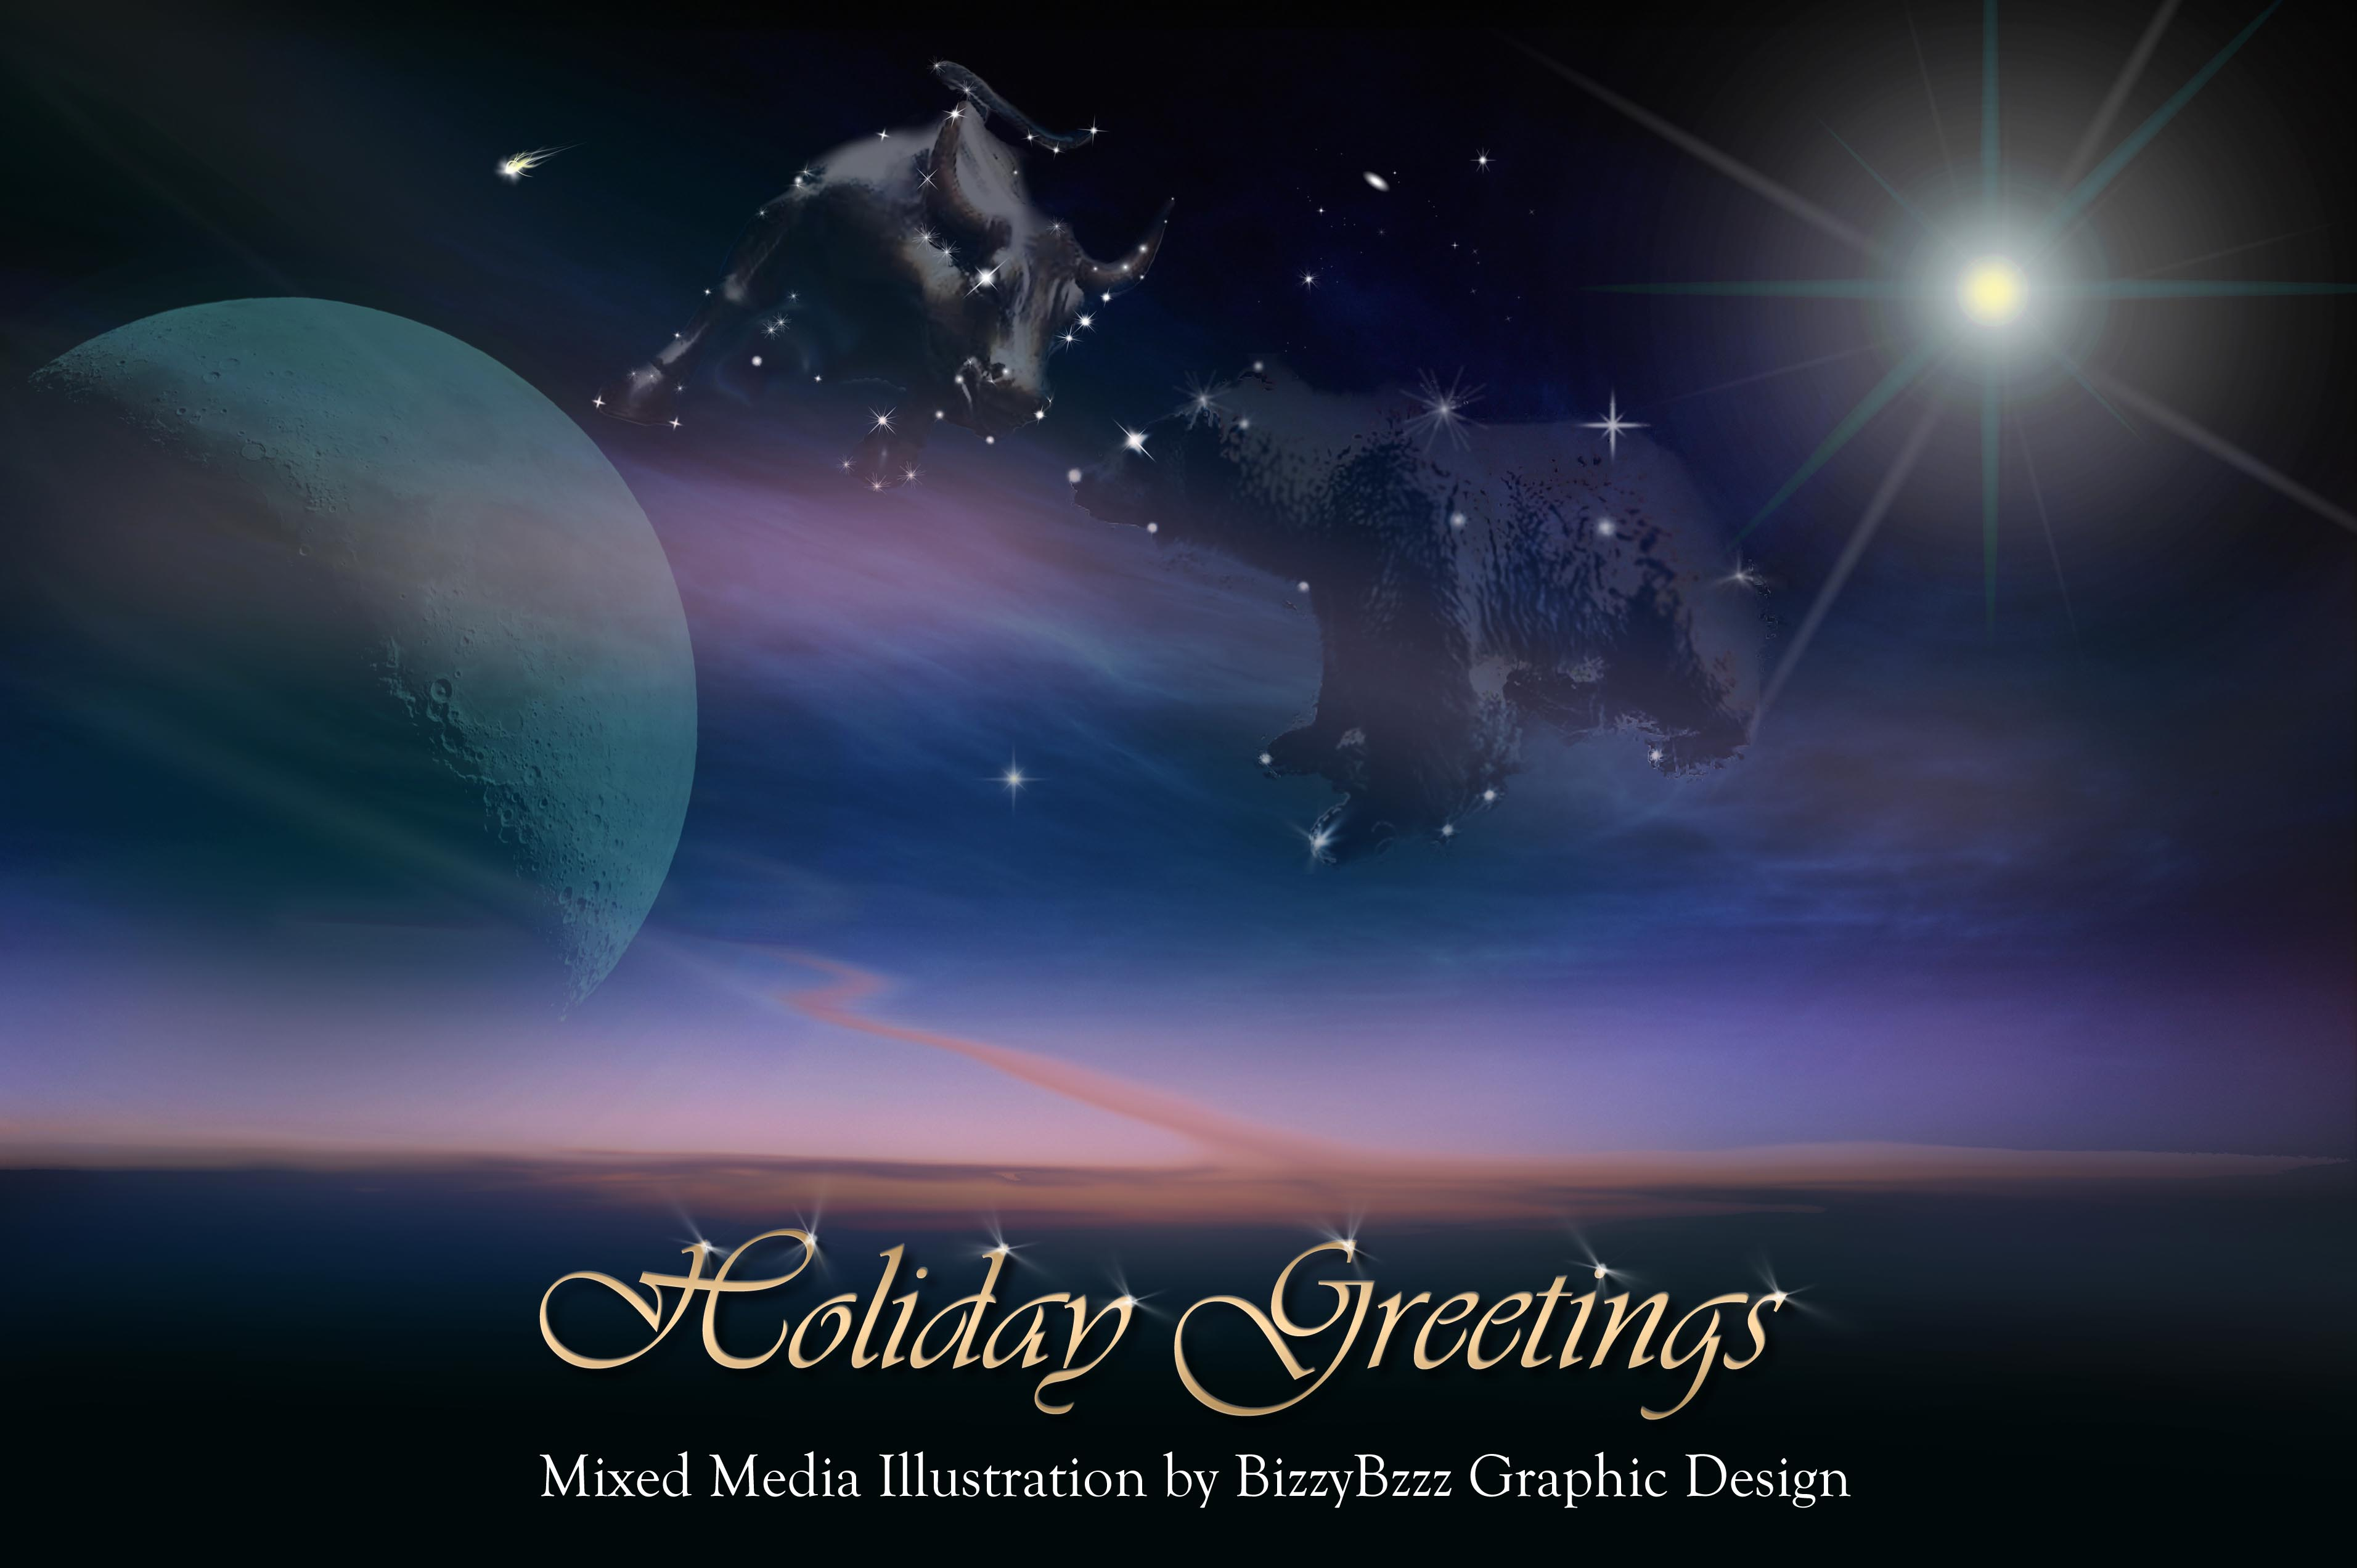 Bizzybzzz graphic designbizzybzzz graphic design blog archive greeting cards for all occasions m4hsunfo